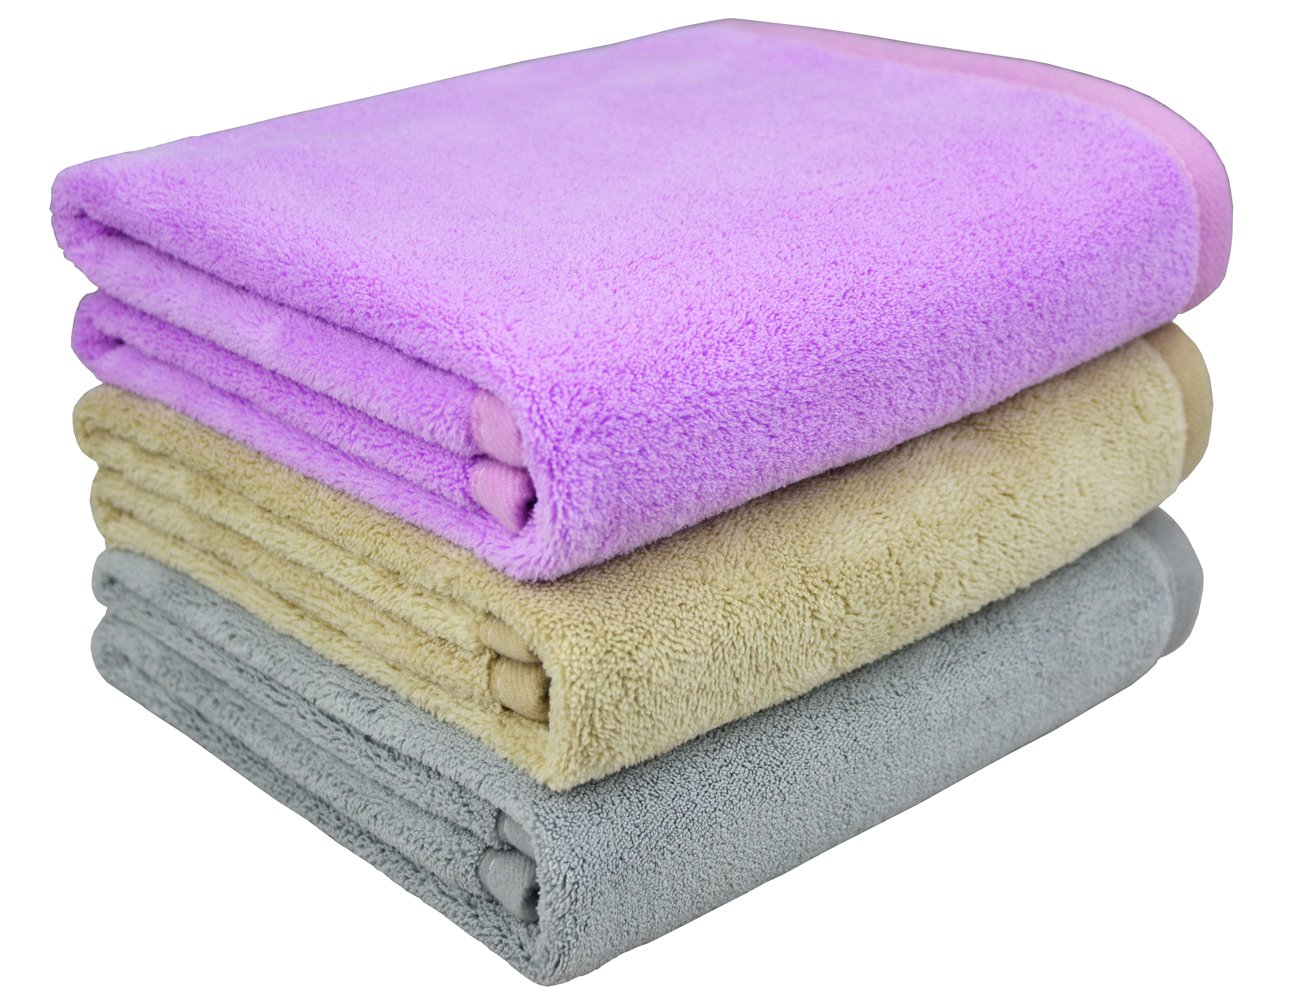 Mayouth Hair Towels Super Soft Absorbent Bath Towels Microfiber Towels Fast Drying Anti-Frizz for Long & Thick Hair (16inch X 32inch, 3-Pack)